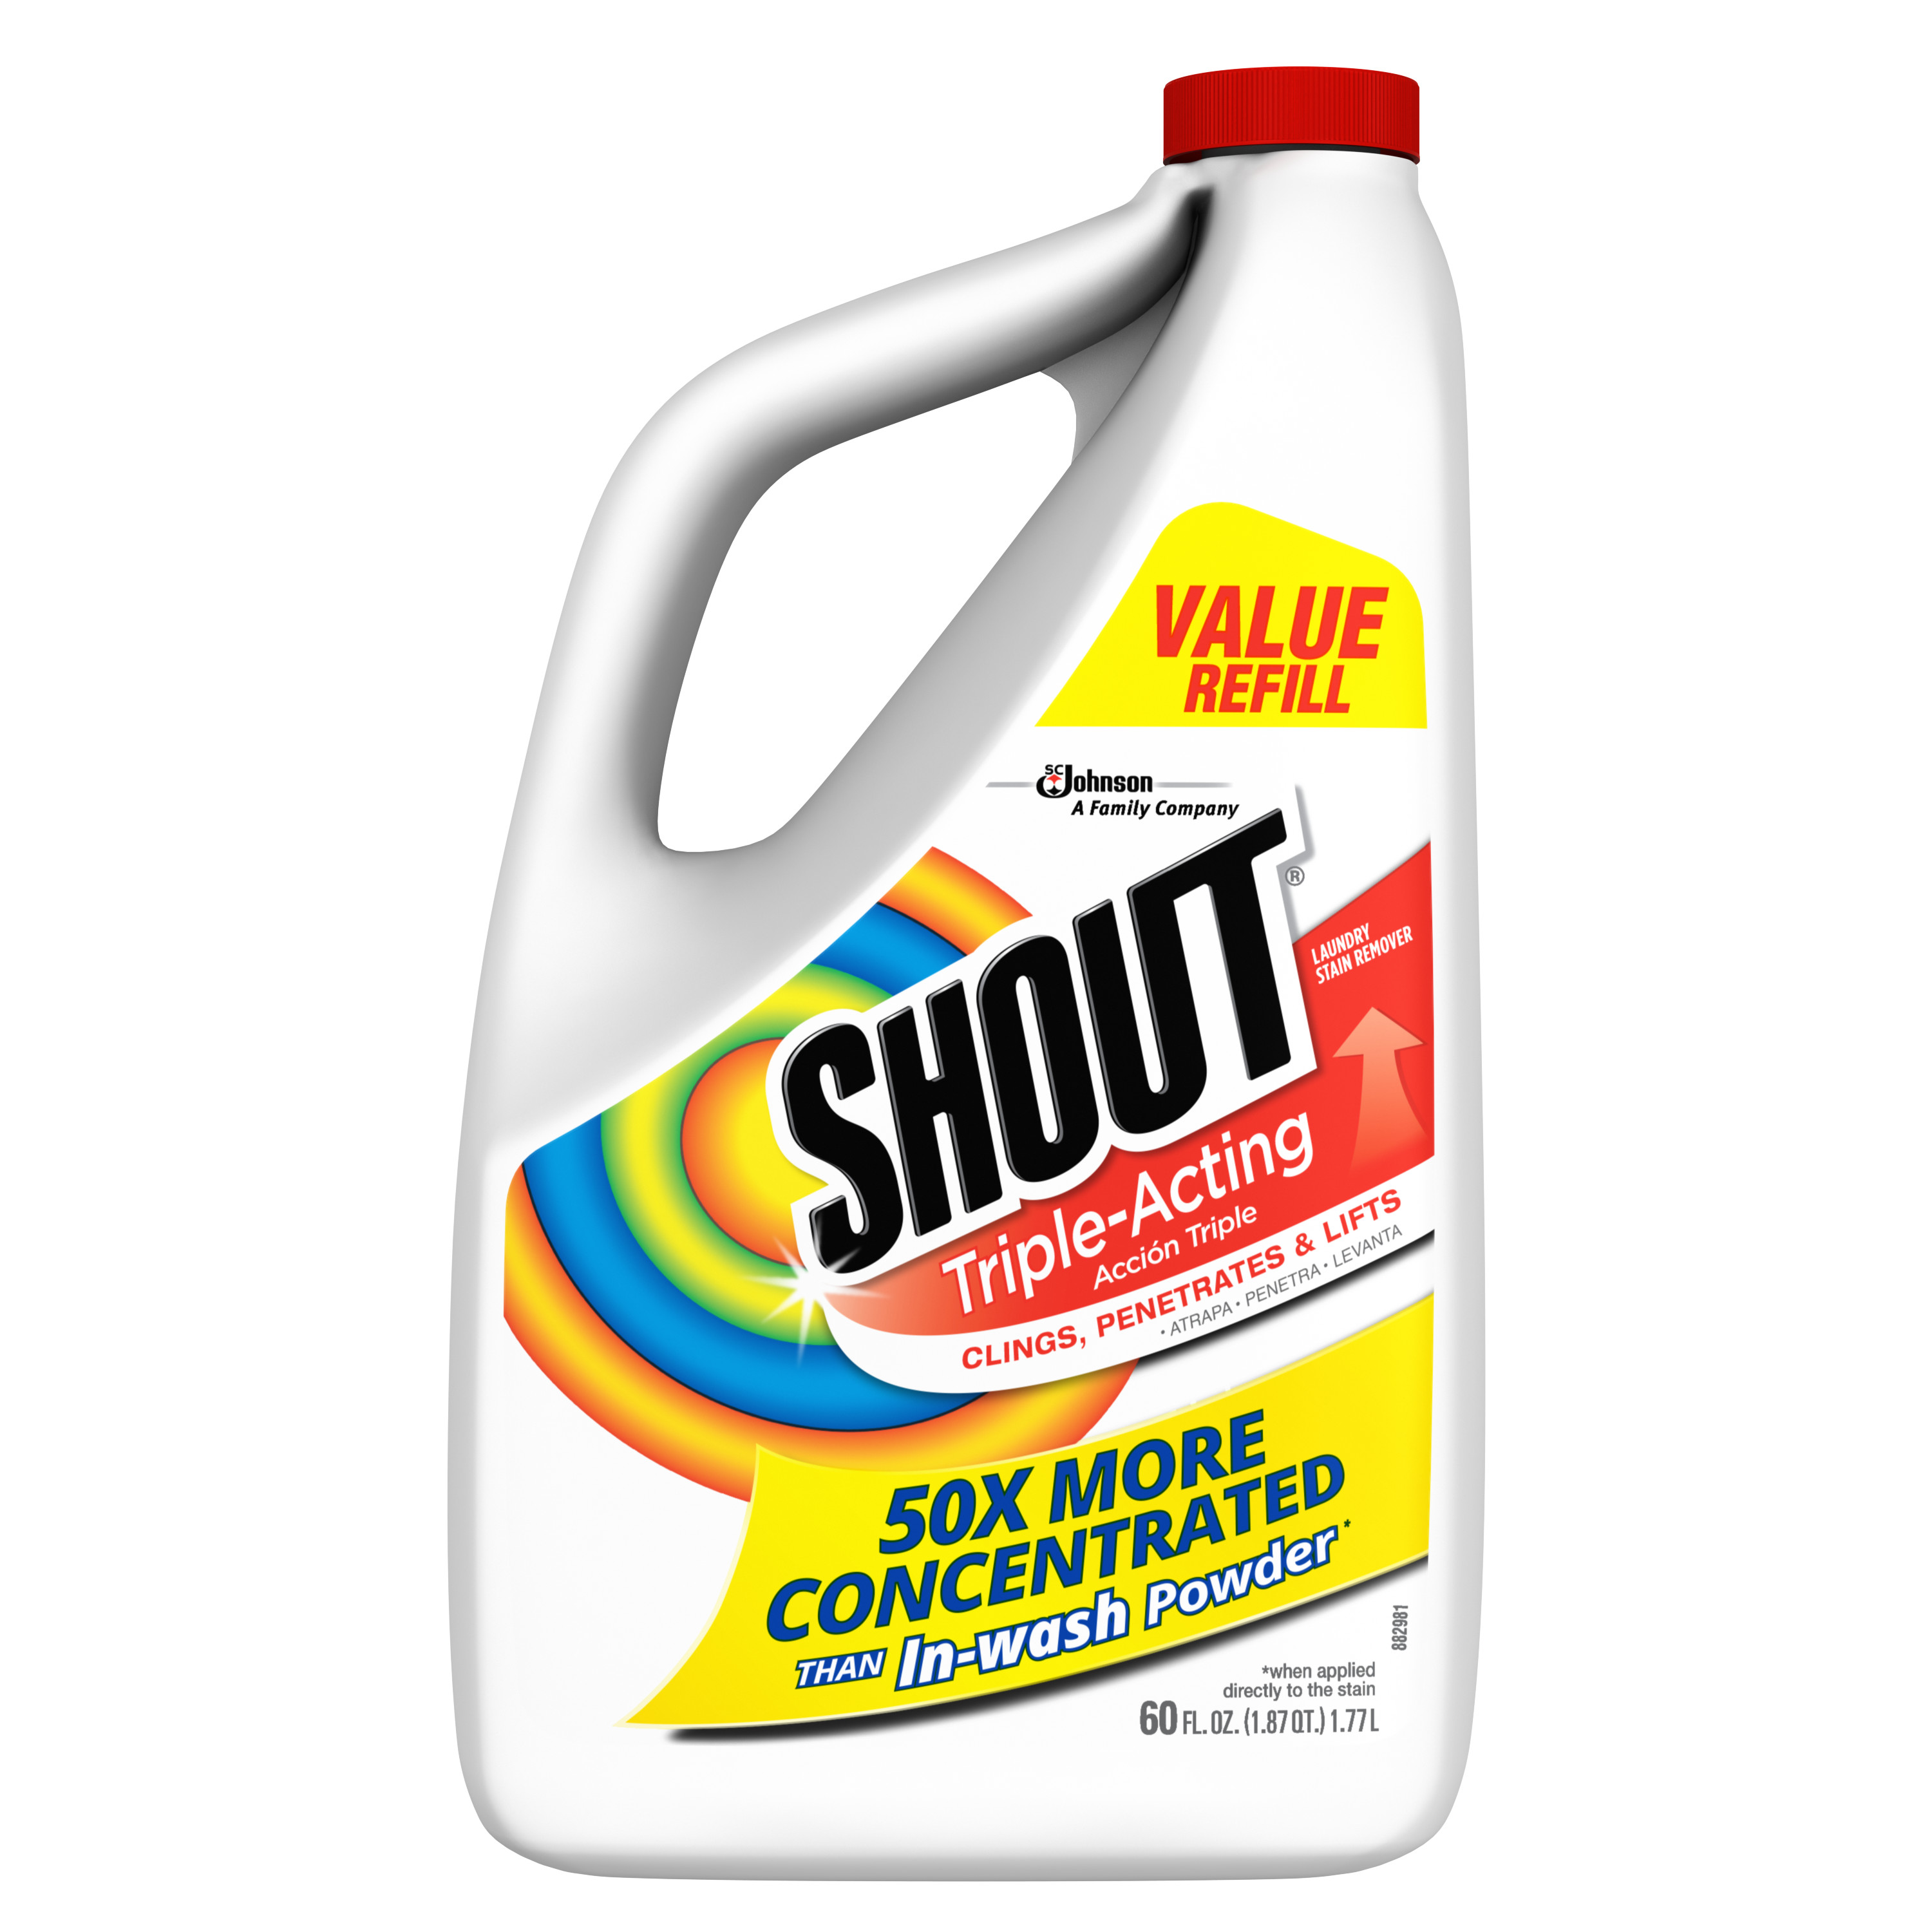 Shout Triple-Acting Liquid Refill 60 Fluid Ounces.